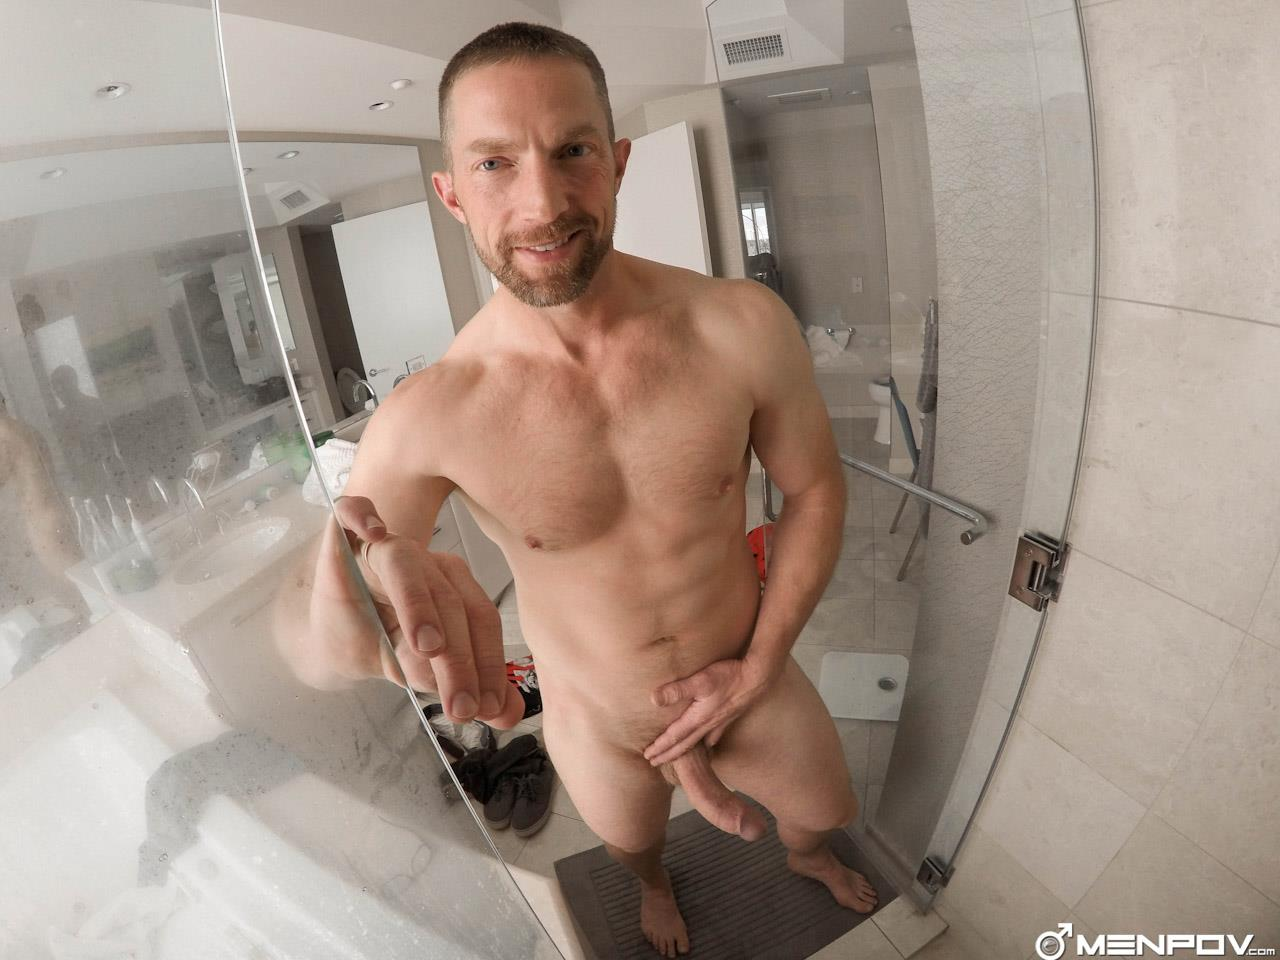 MenPOV-Colt-Rivers-and-Adam-Herst-Daddy-Fucking-His-Boy-Toy-With-A-Thick-Cock-Amateur-Gay-Porn-10 Muscular Daddy Fucking His Boy Toy With His Thick Hard Cock